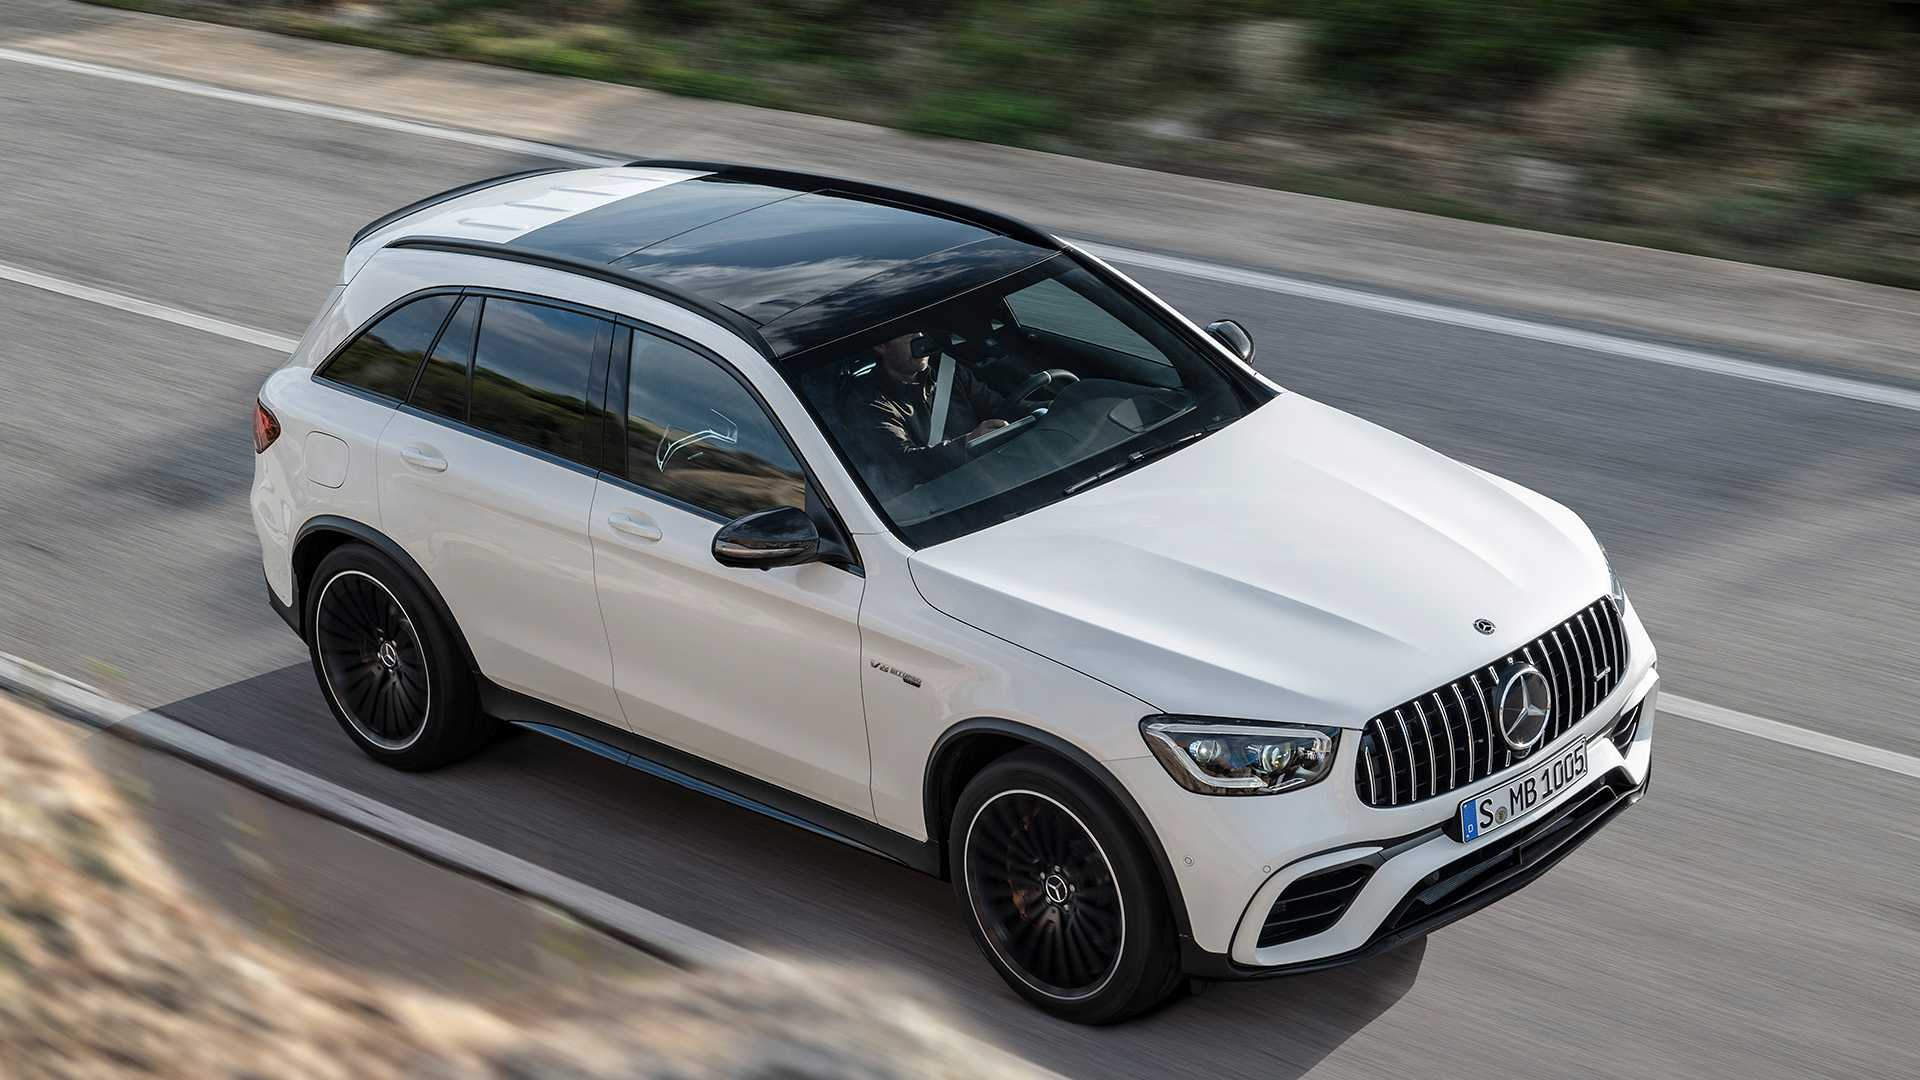 2020 Mercedes-AMG GLC 63 Top Wallpapers (10)